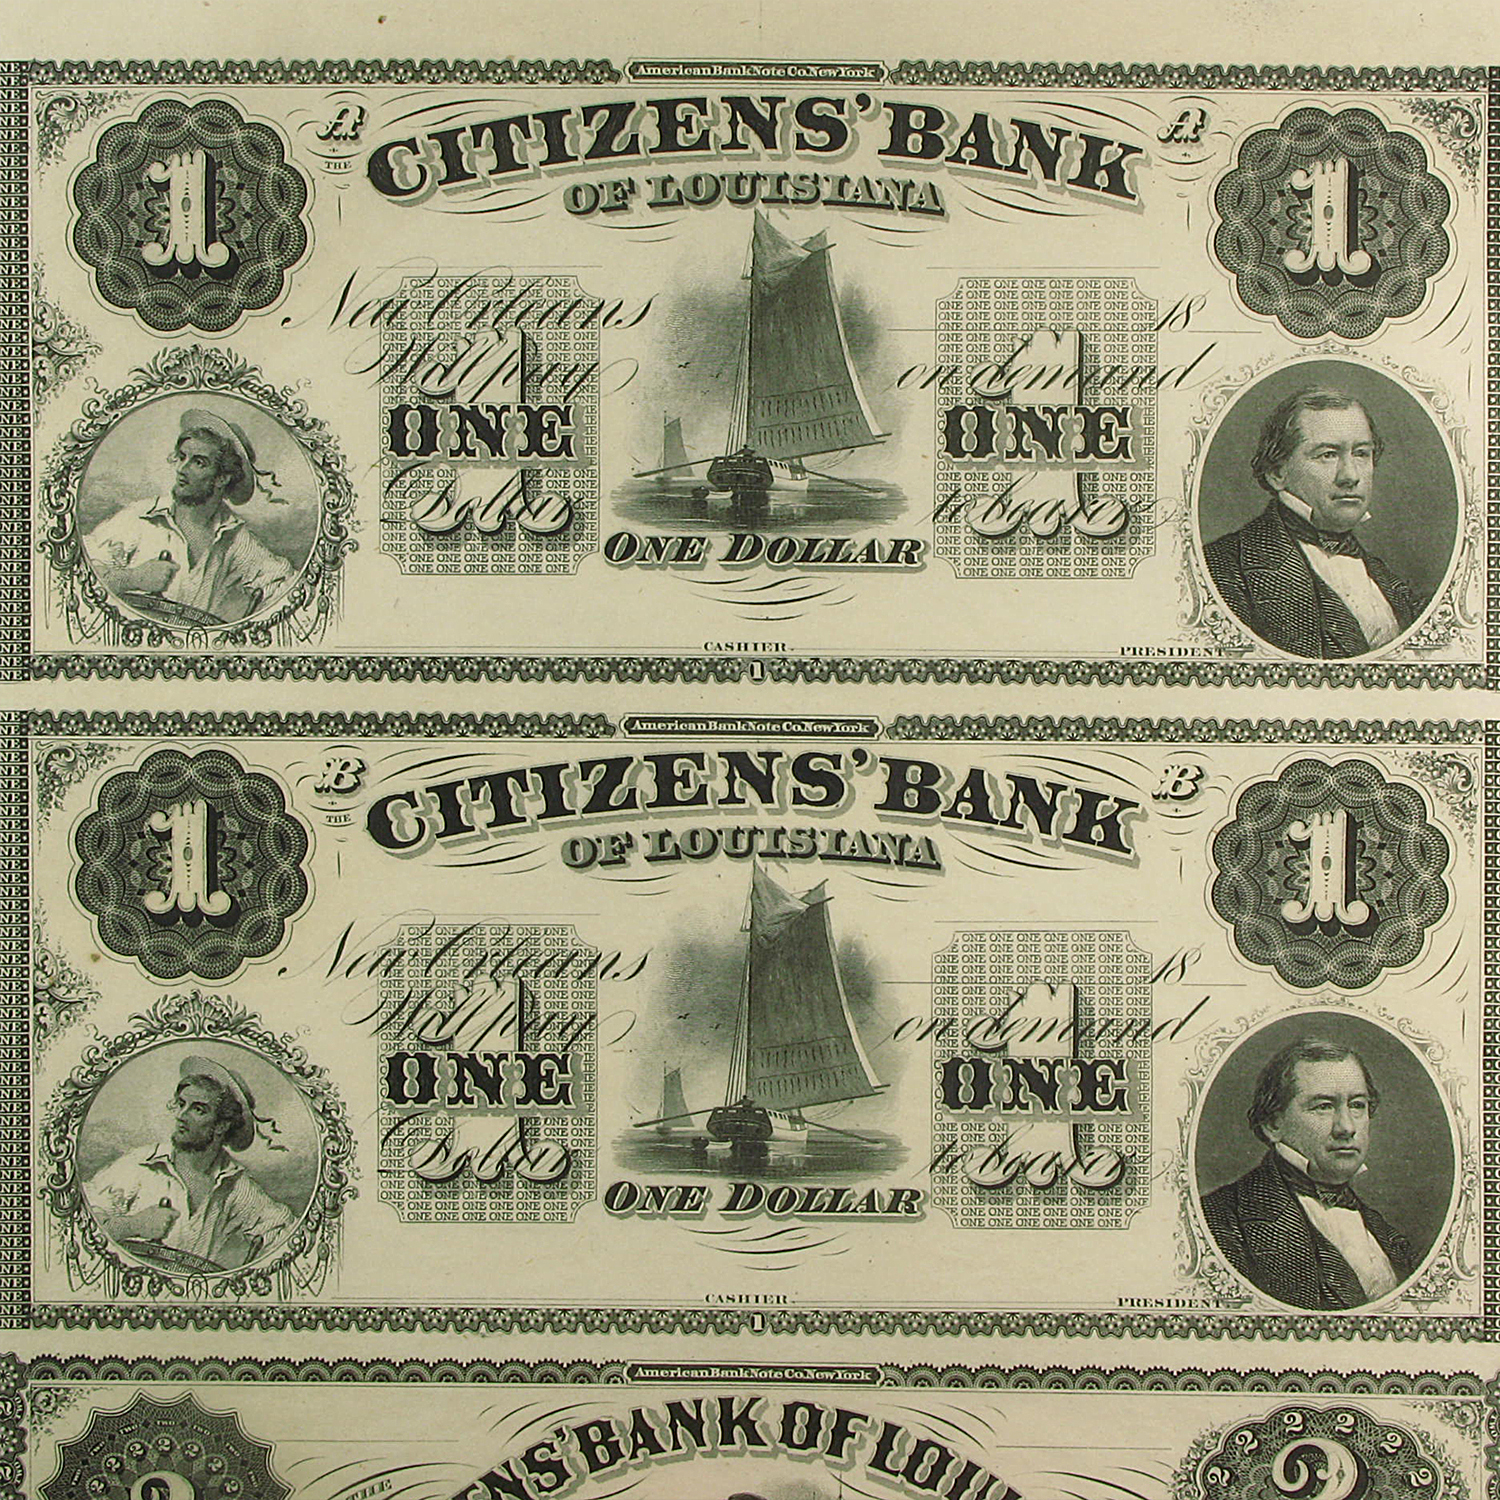 18__ UNCUT SHEET Citizens Bank of Louisiana $1-1-2-3 LA-15 CU